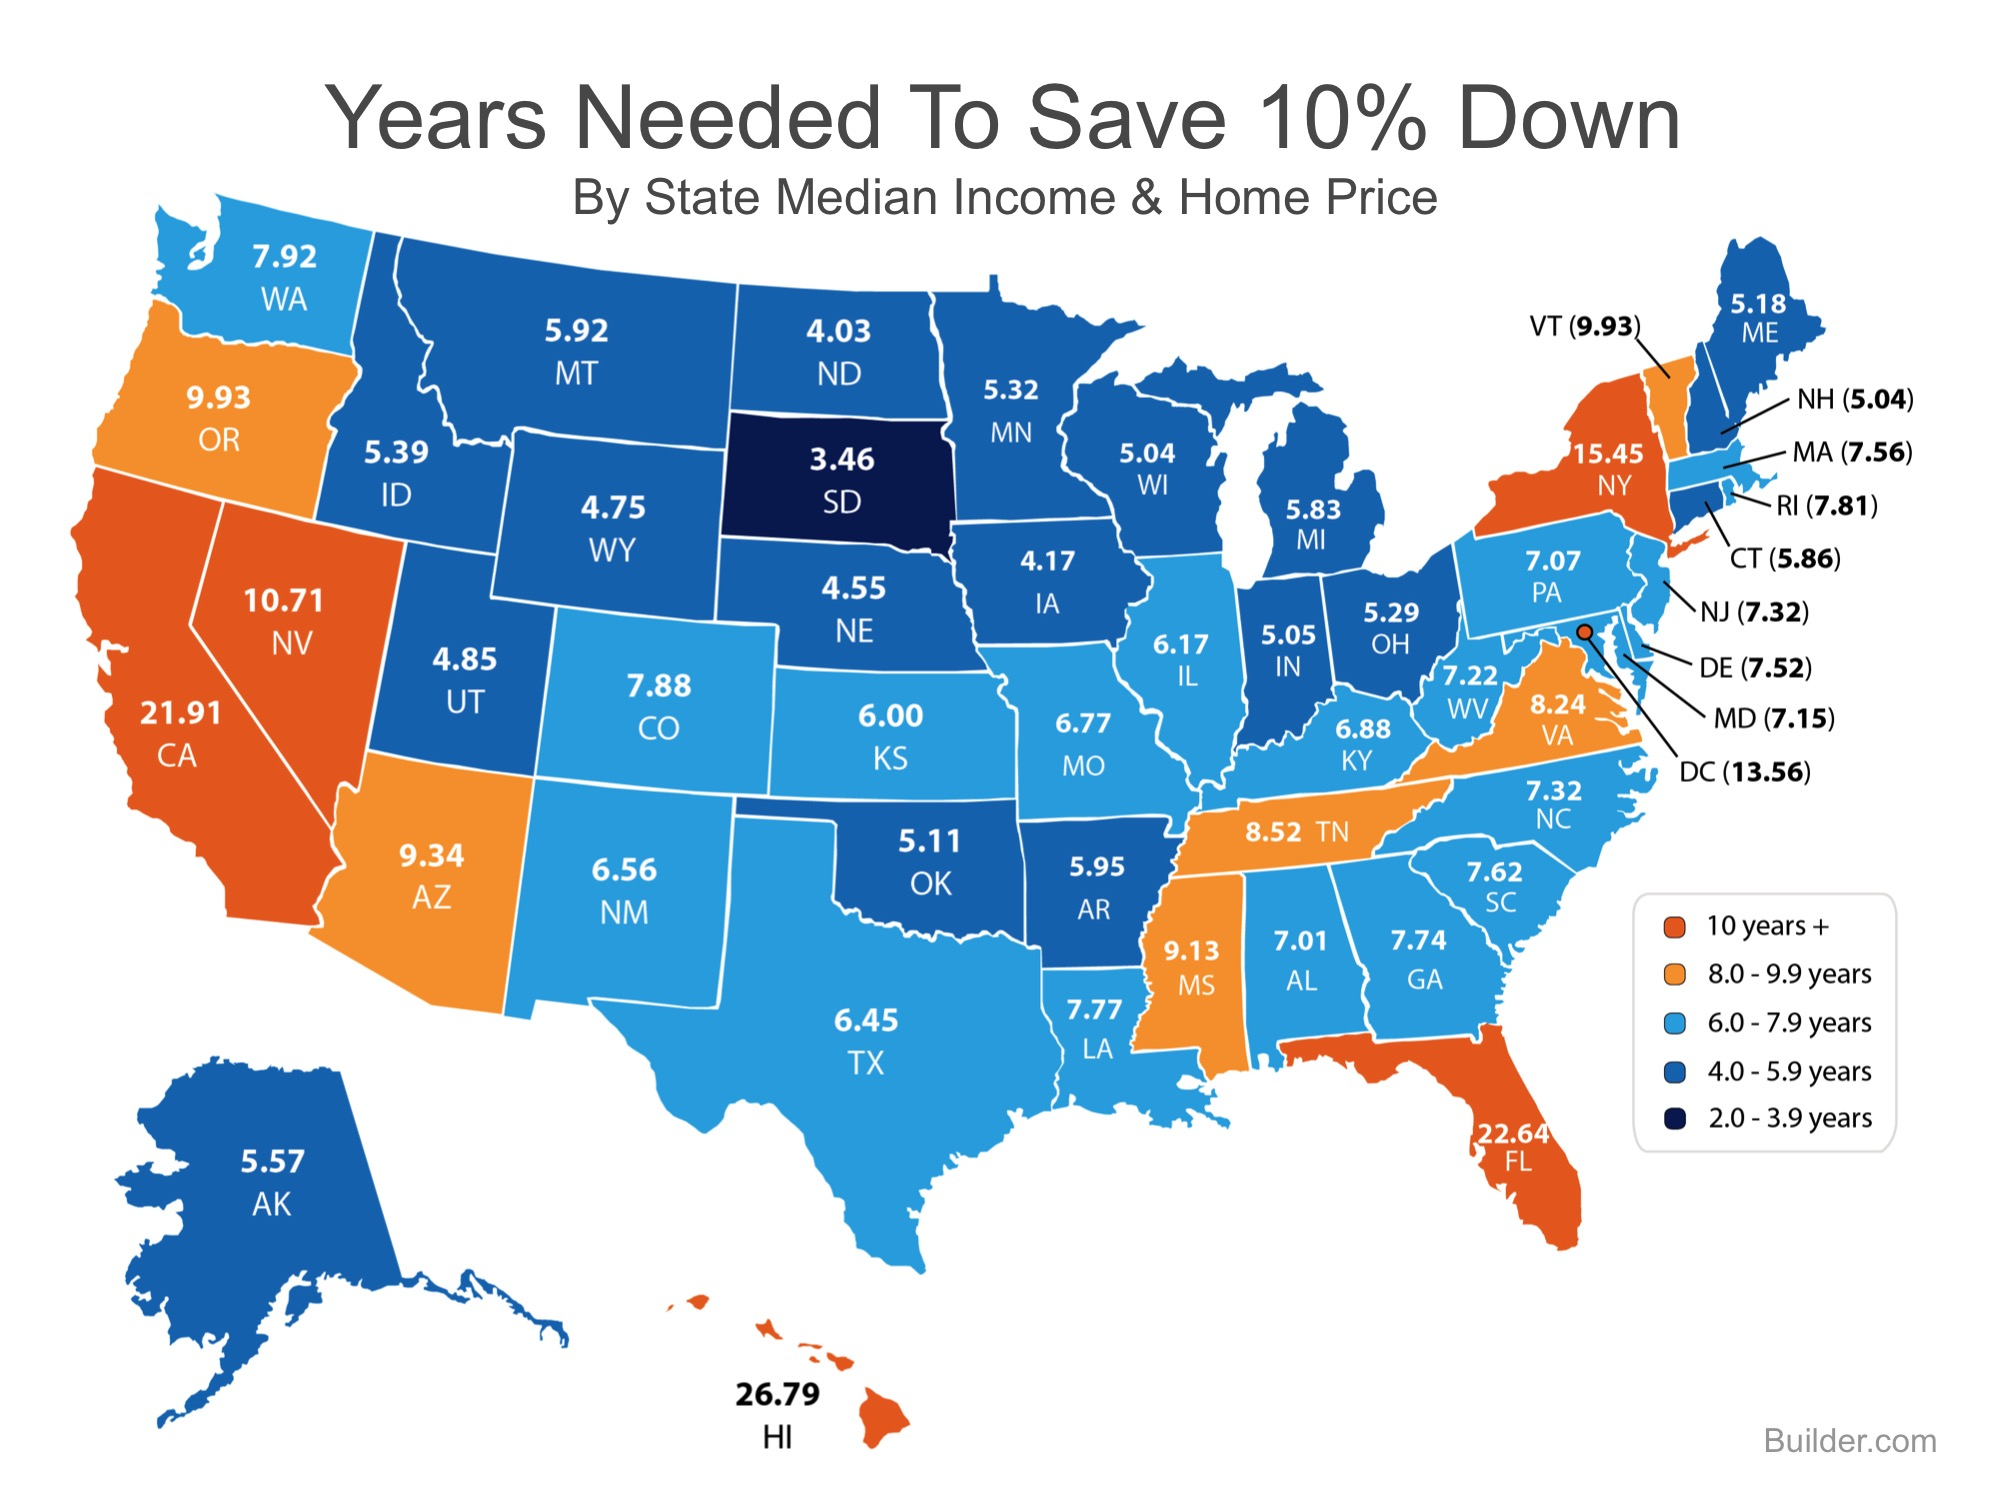 Years Needed to Save 10% | Simplifying The Market